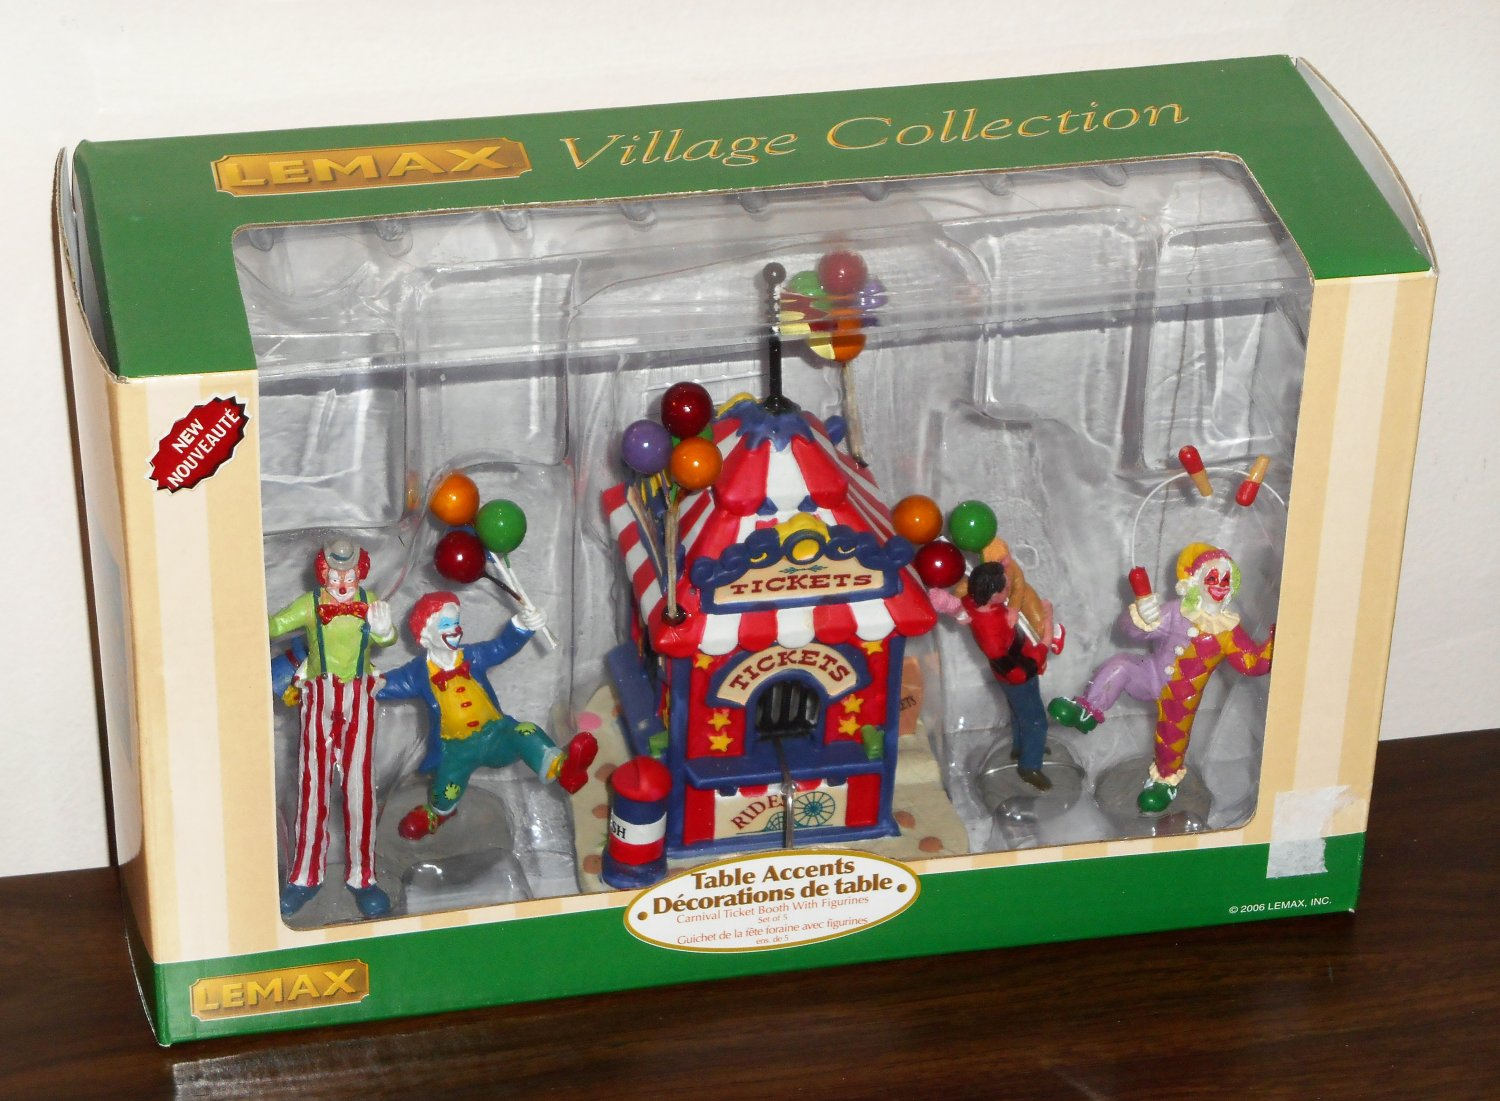 Carnival Ticket Booth Lemax Circus Village Collection 63563 Table Accent Polyresin Figurines 2006